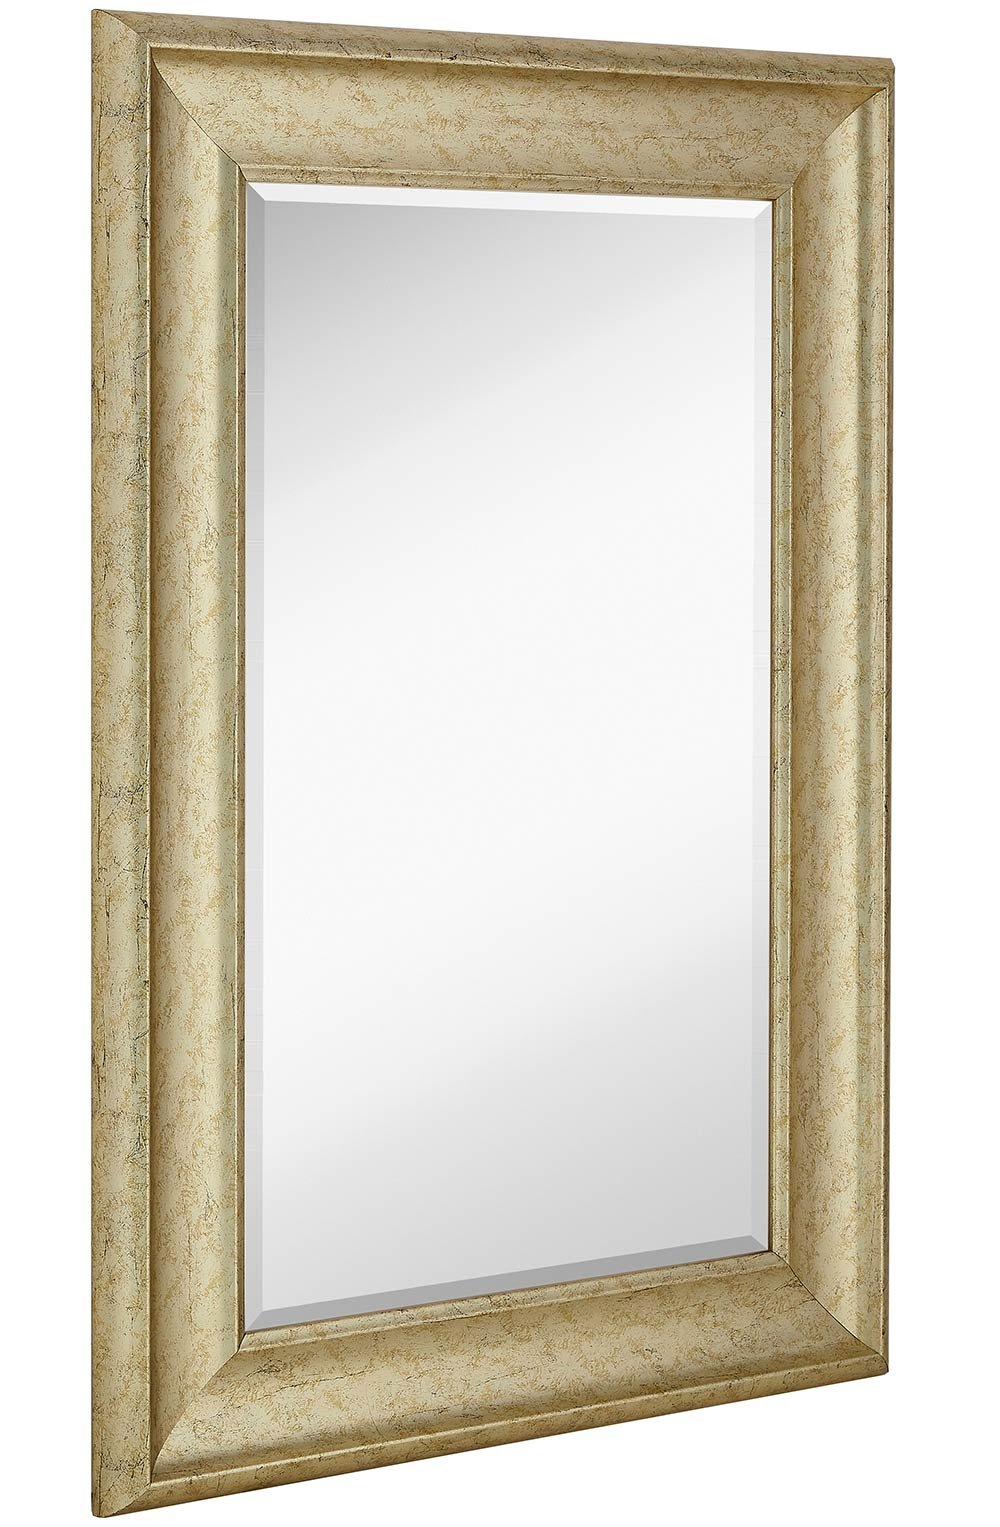 Smooth Transitional Framed Mirror | 1'' Beveled Silver Backed Glass | Vanity, Bedroom, or Bathroom | Mirrored Rectangle Hangs Horizontal or Vertical Thick Frame | 24'' x 36'' Inches Style B